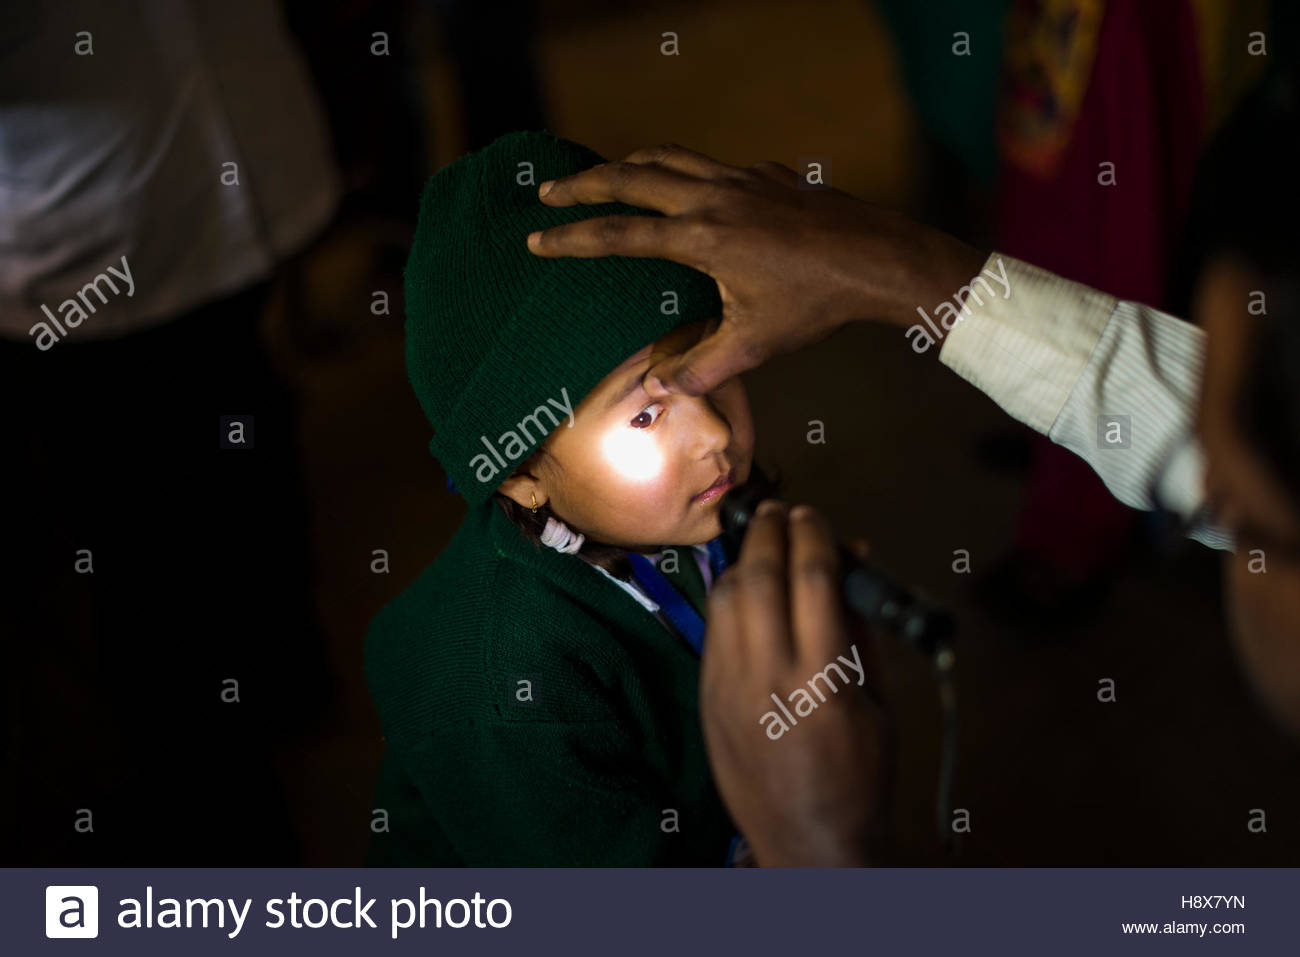 A doctor looking at a baby's eye with a torch in hospital in Nepal. Stock Photo